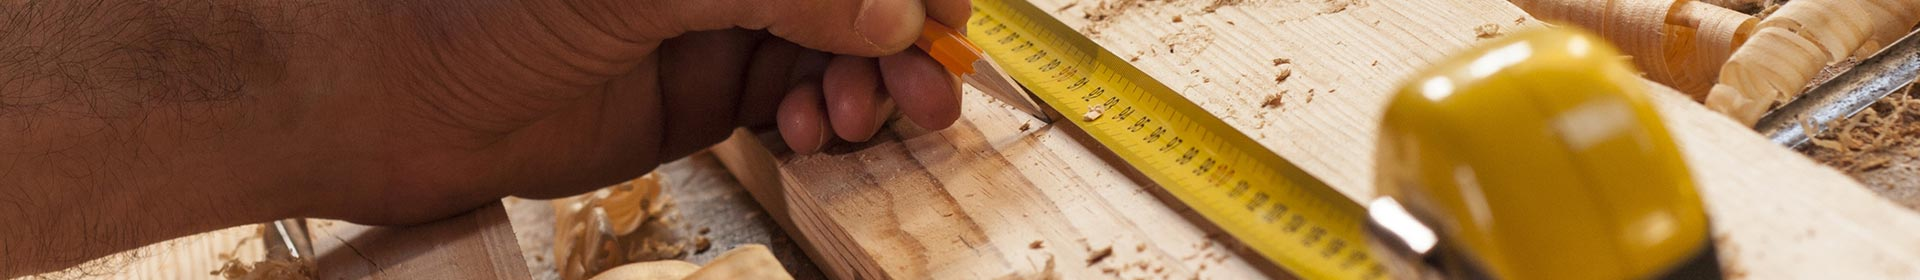 Joinery Services in Sheffield - A. Frost Sheffield Builders and Joiners